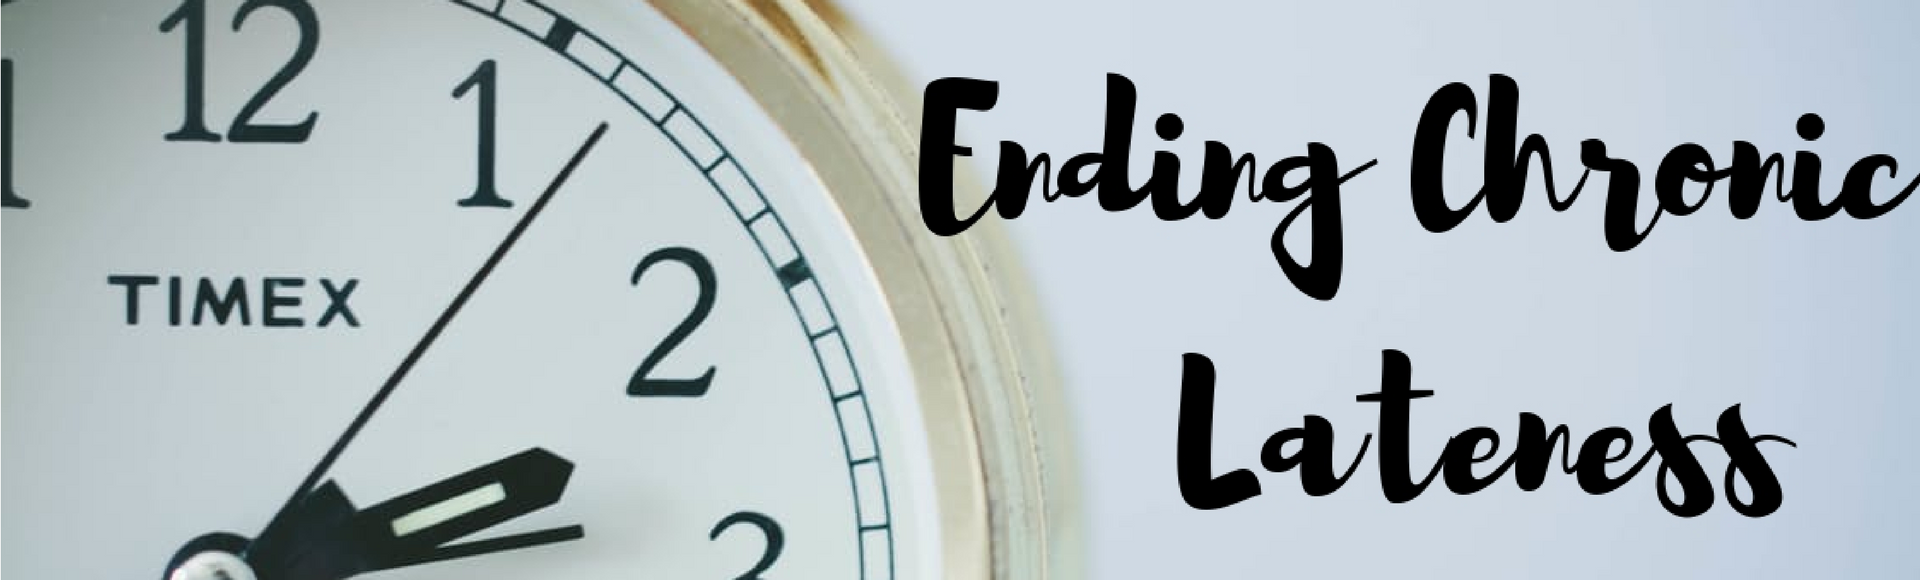 ending lateness